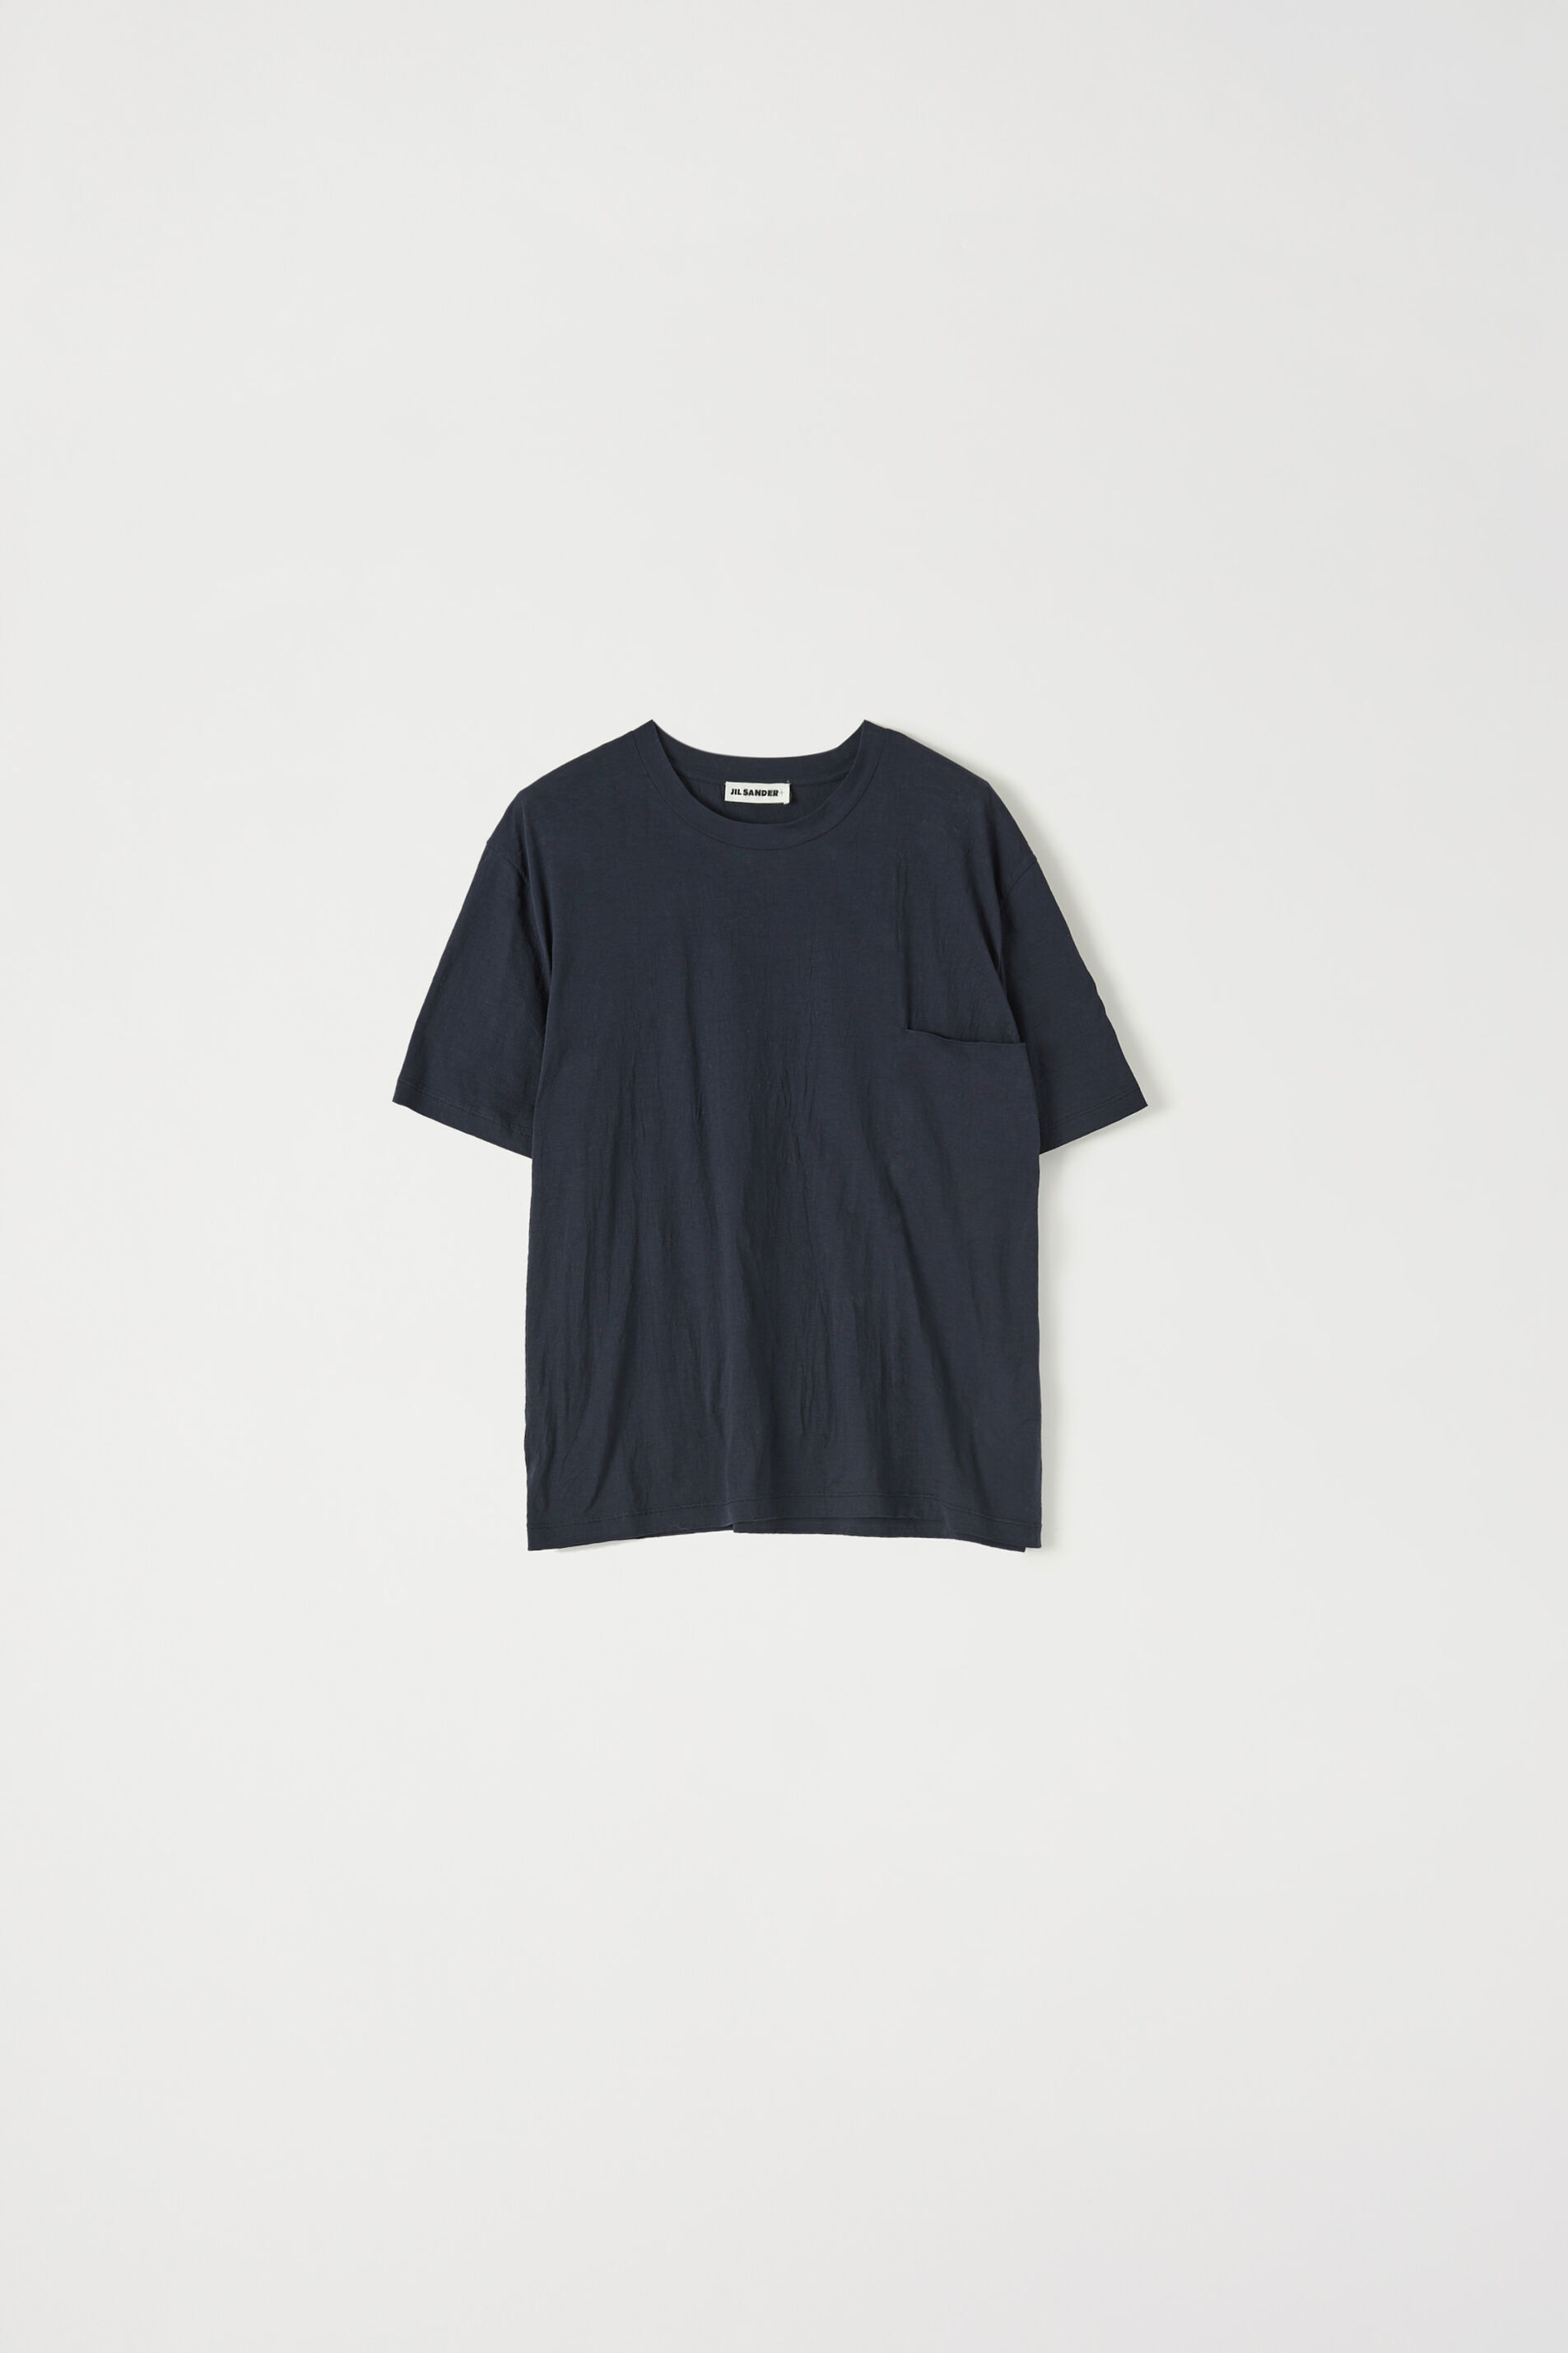 T-Shirt, dark blue, large